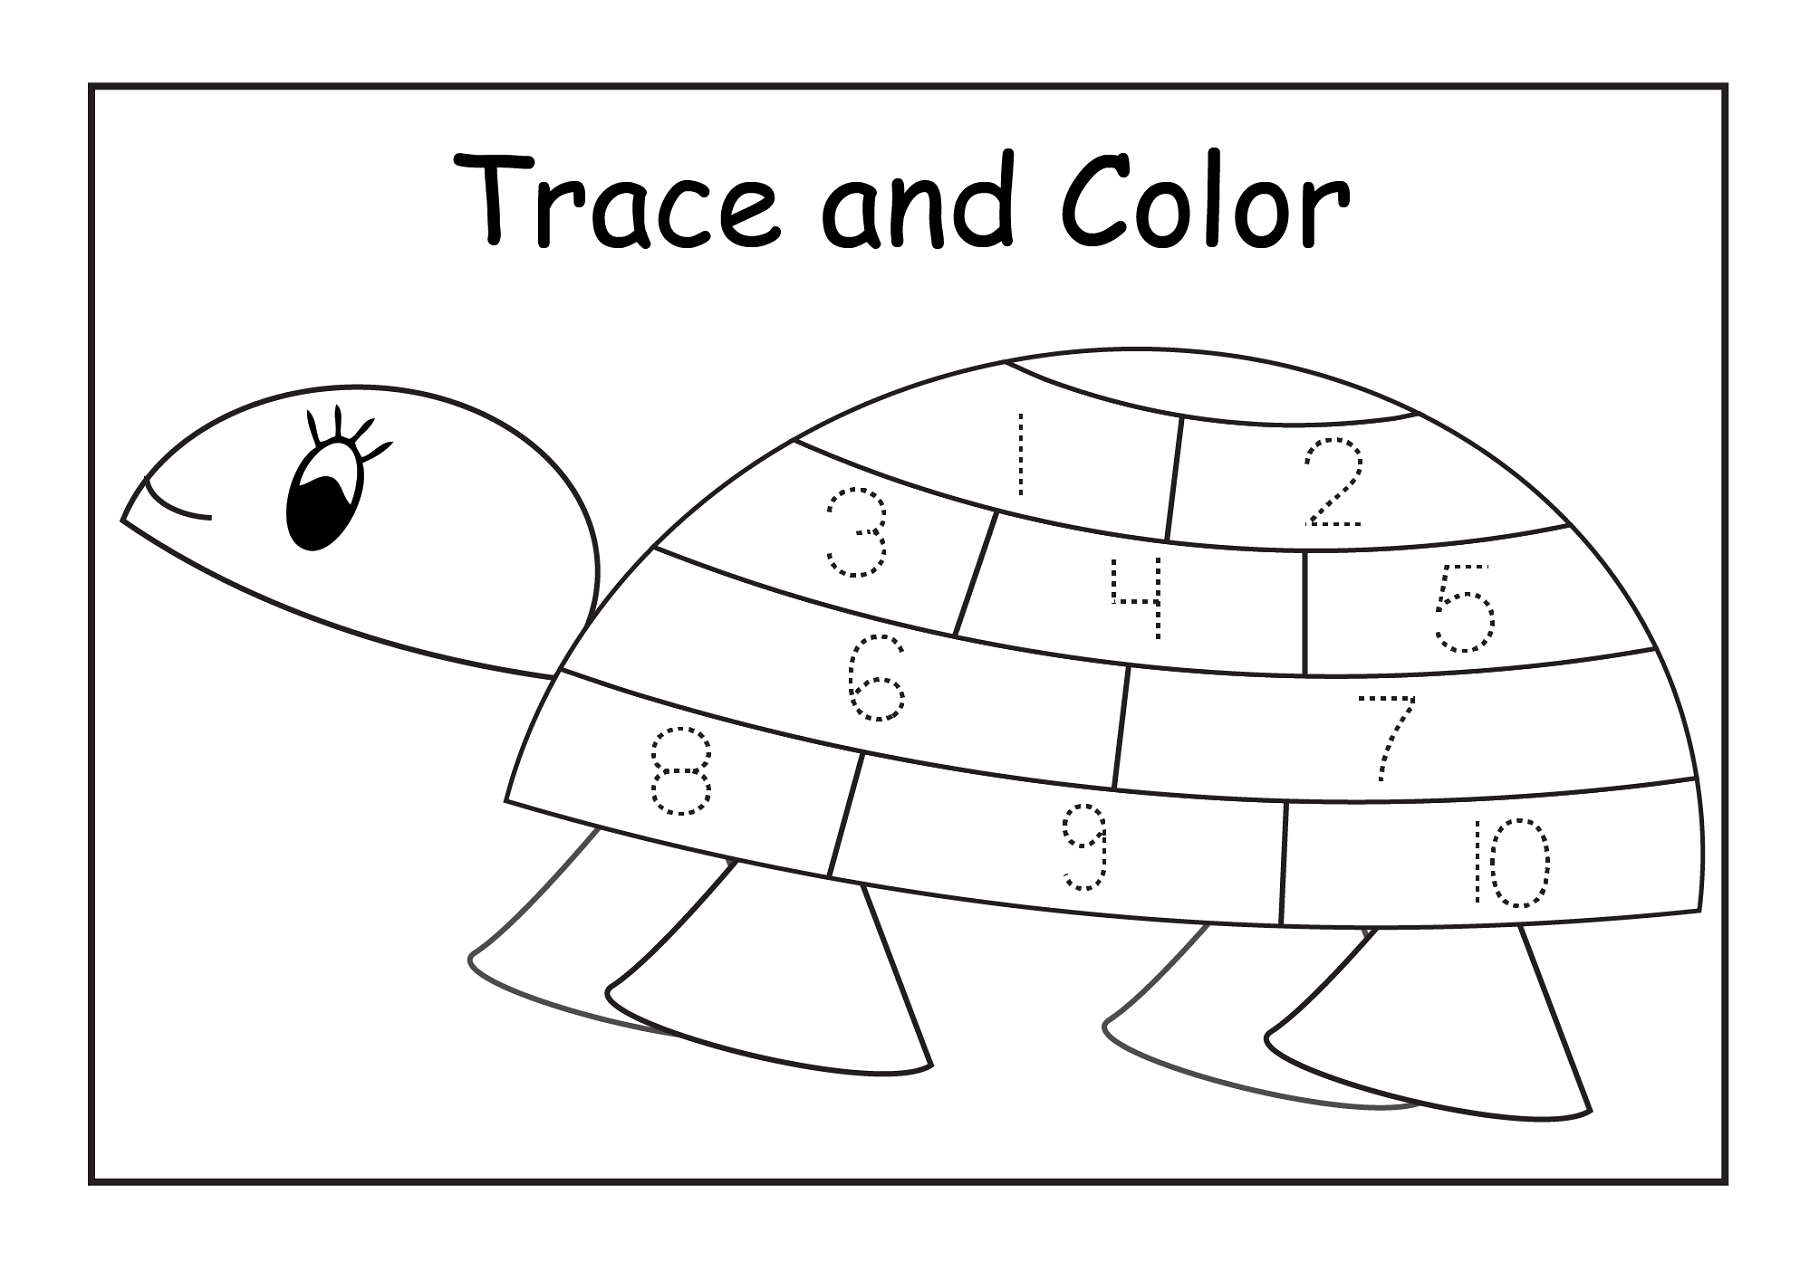 Tracing Sheets For Preschoolers Kids Learning Activity